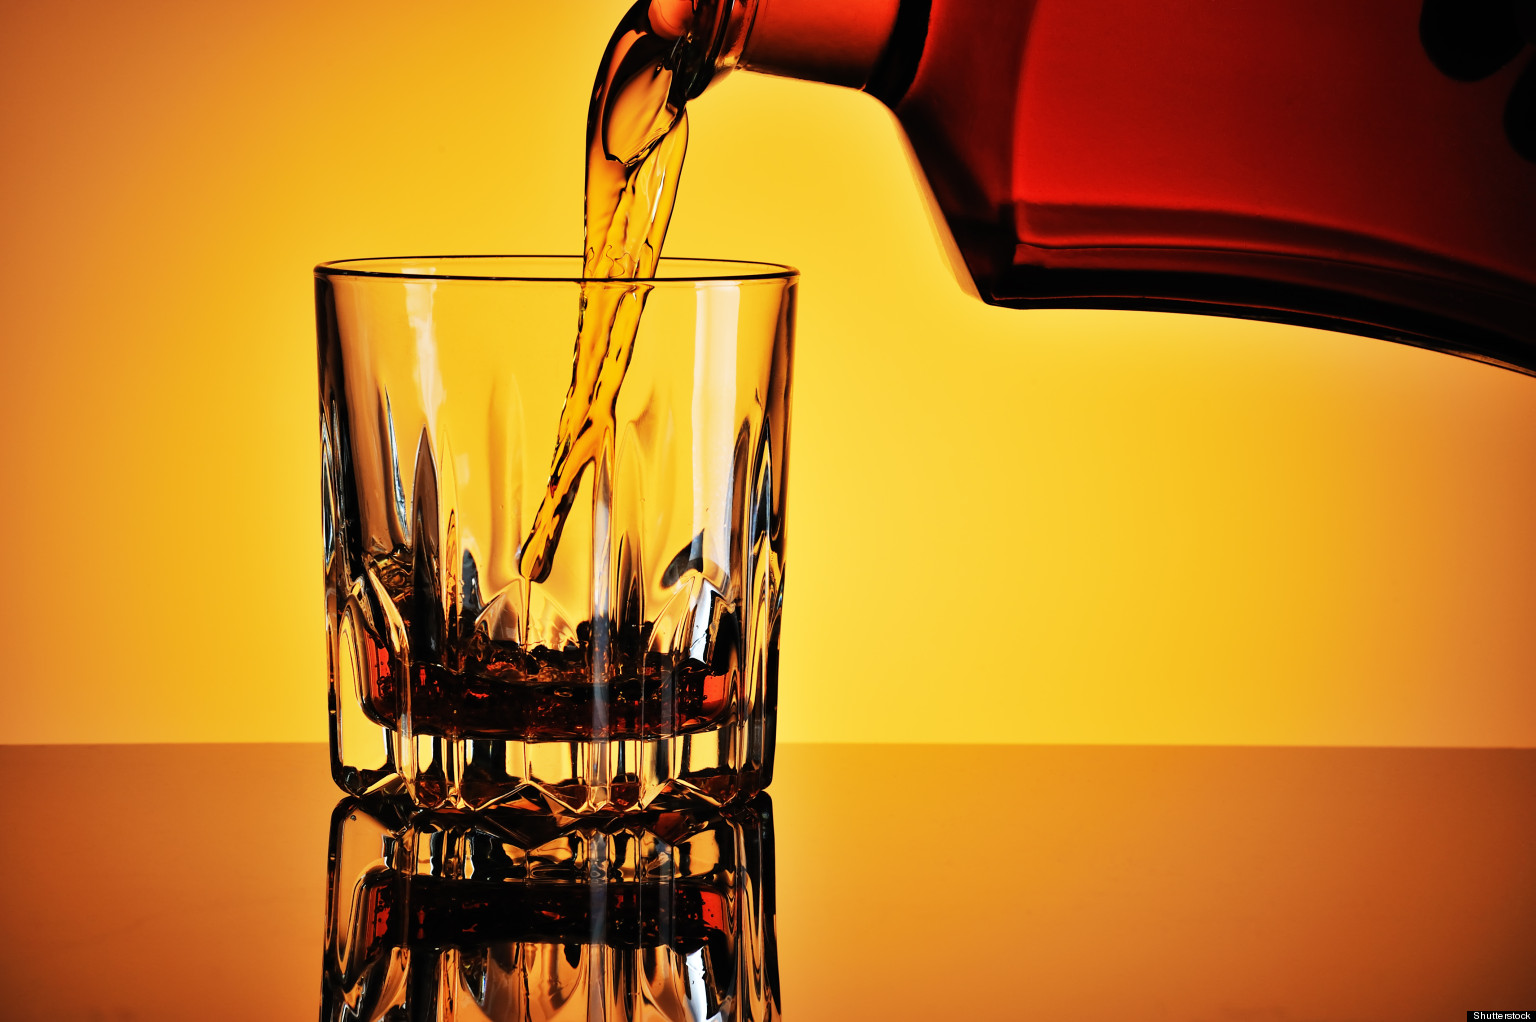 alcoholism compulsive and uncontrolled consumption of It is characterized by compulsive and uncontrolled consumption of alcohol despite its negative effects on the drinker's health, relationships, and social standing like other drug.